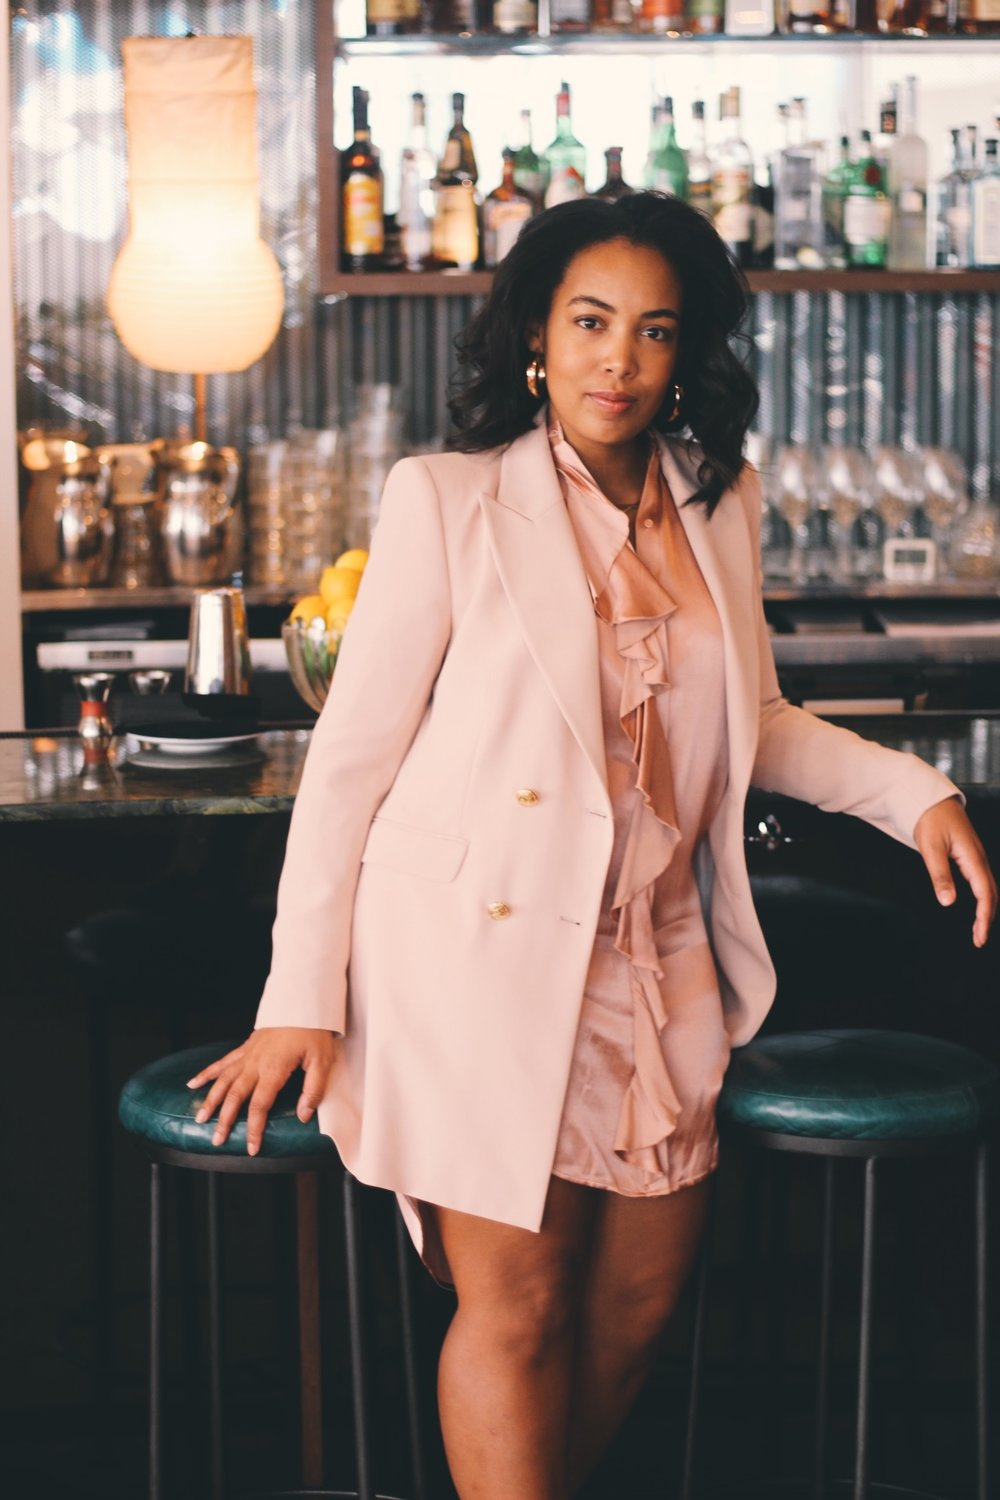 Durham-Hotel-Robinson-Style-Zara-blazer-dress-ruffle-shirt-dress-raid-asos-sock-boots-5.JPG